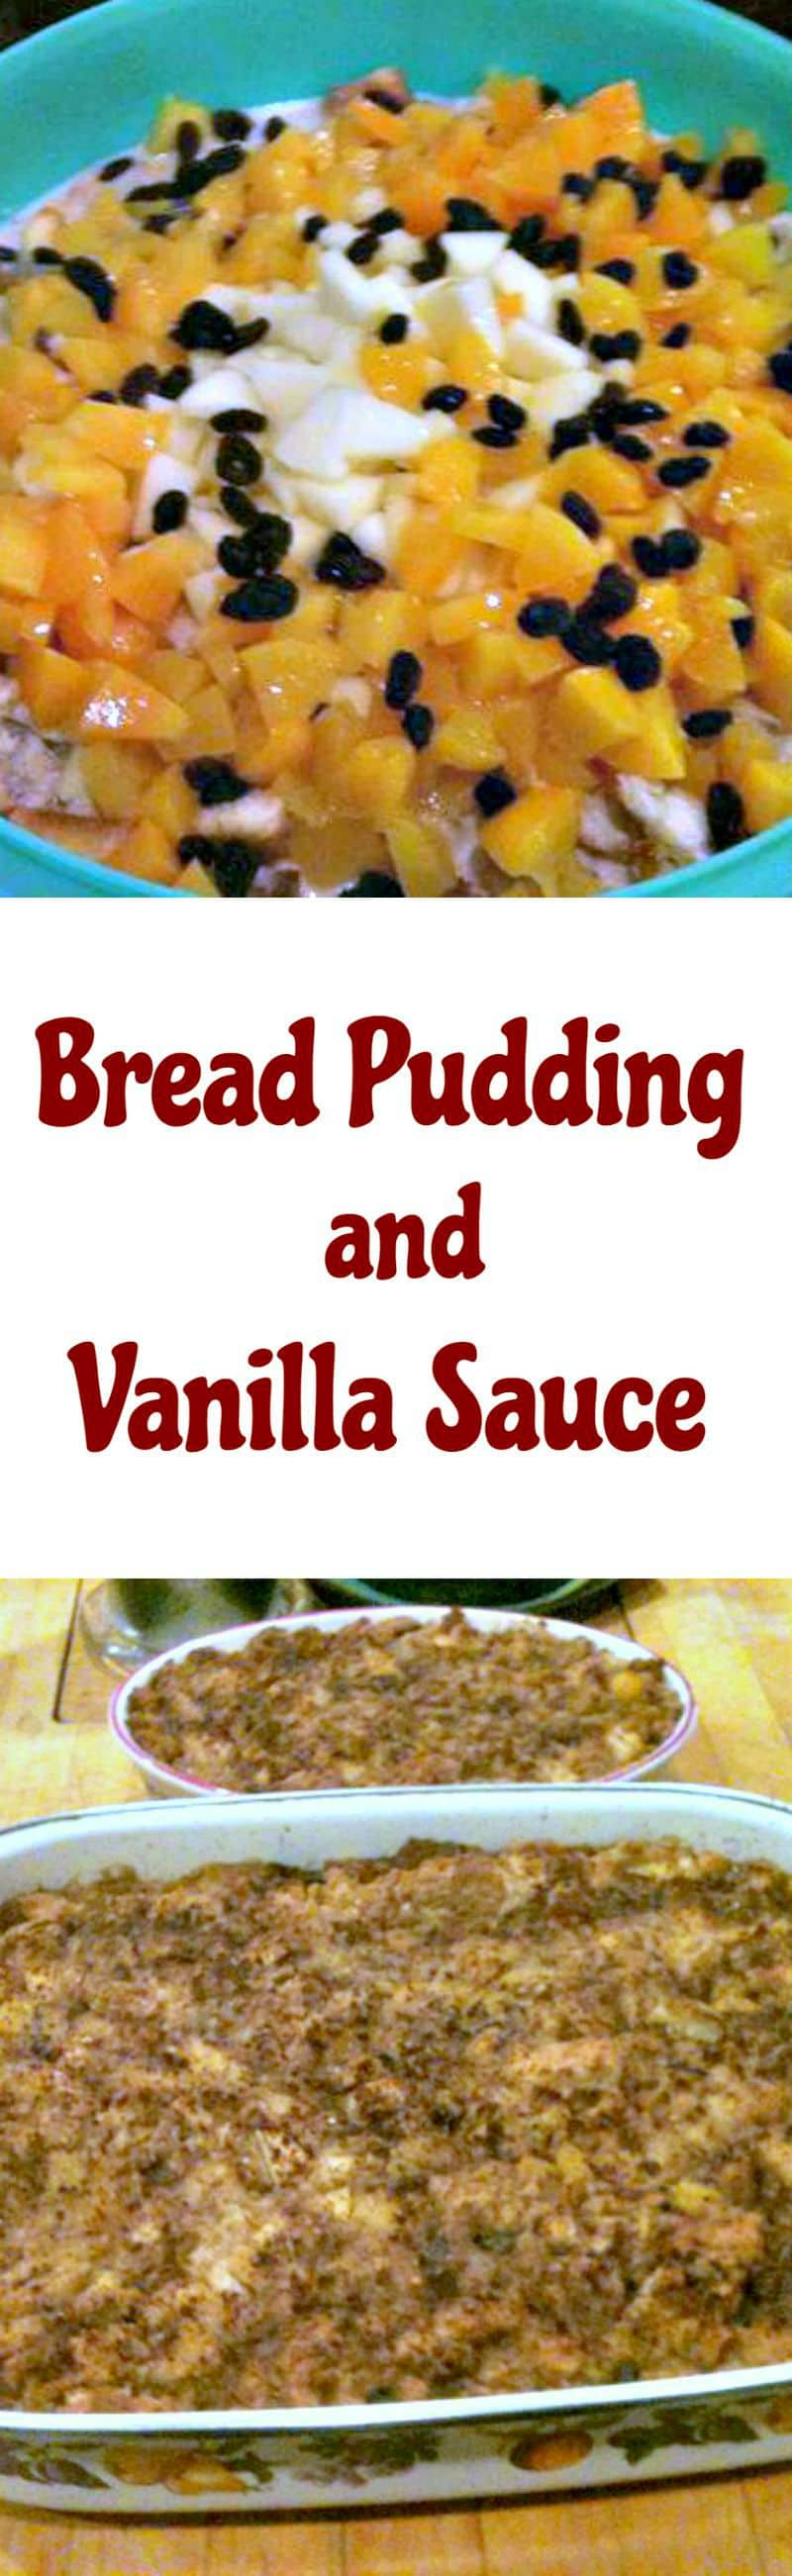 Bread Pudding and Vanilla Sauce is a lovely dessert, filled with ...